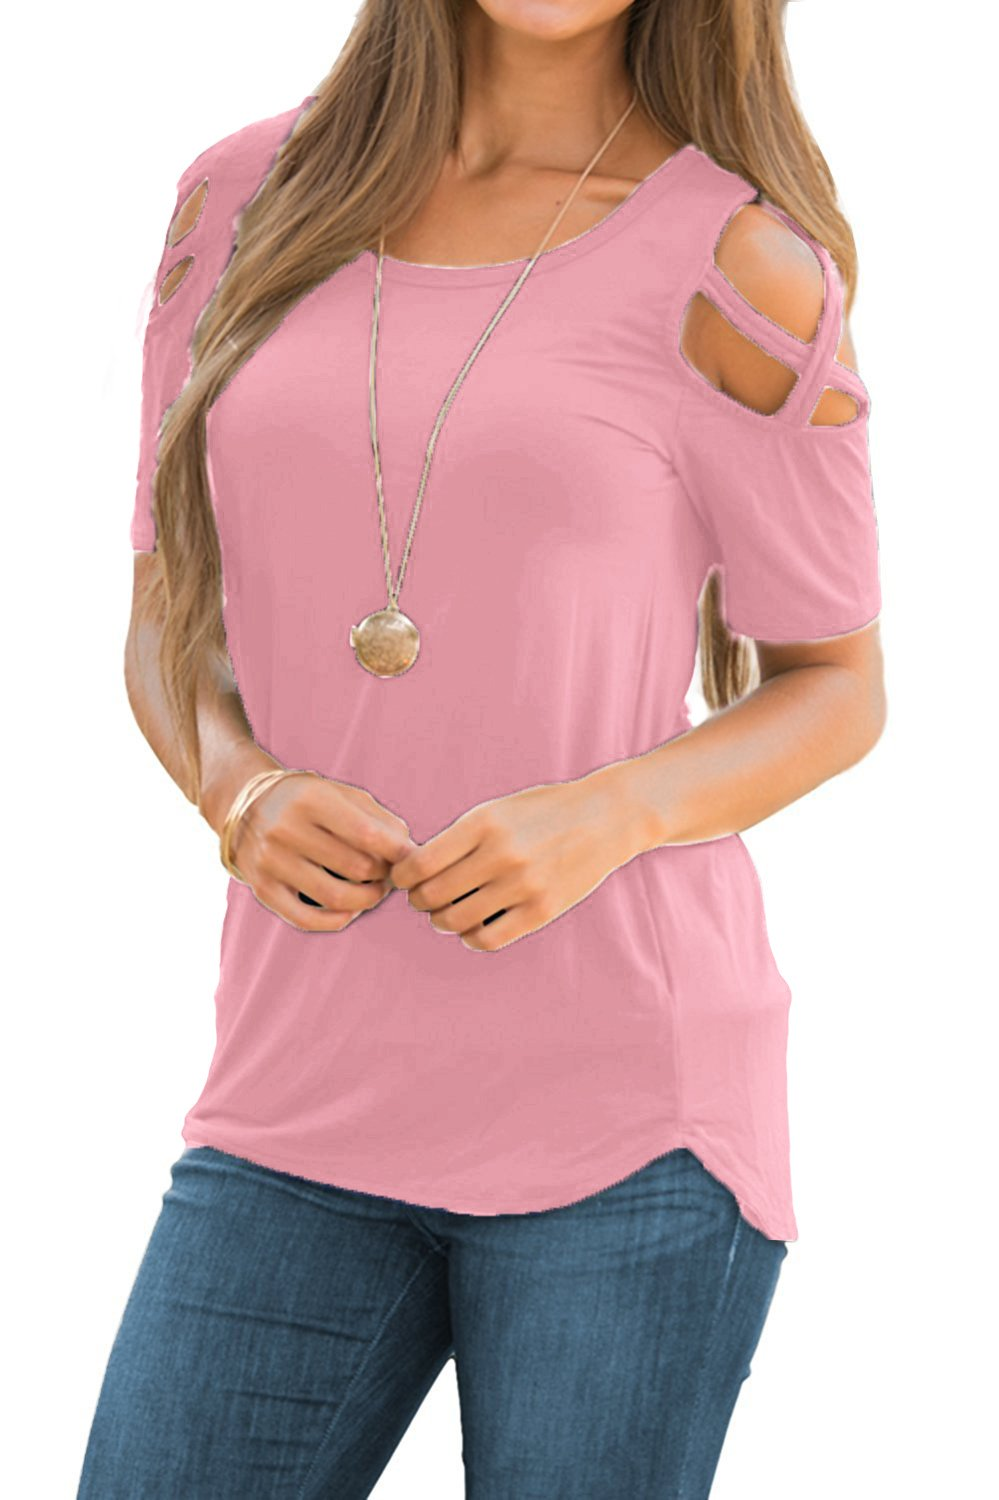 Uniboutique Womens Fashion 2018 Loose Criss Cross Cold Shoulder Short Sleeve T Shirts Tops Blouses for Juniors Pink Large